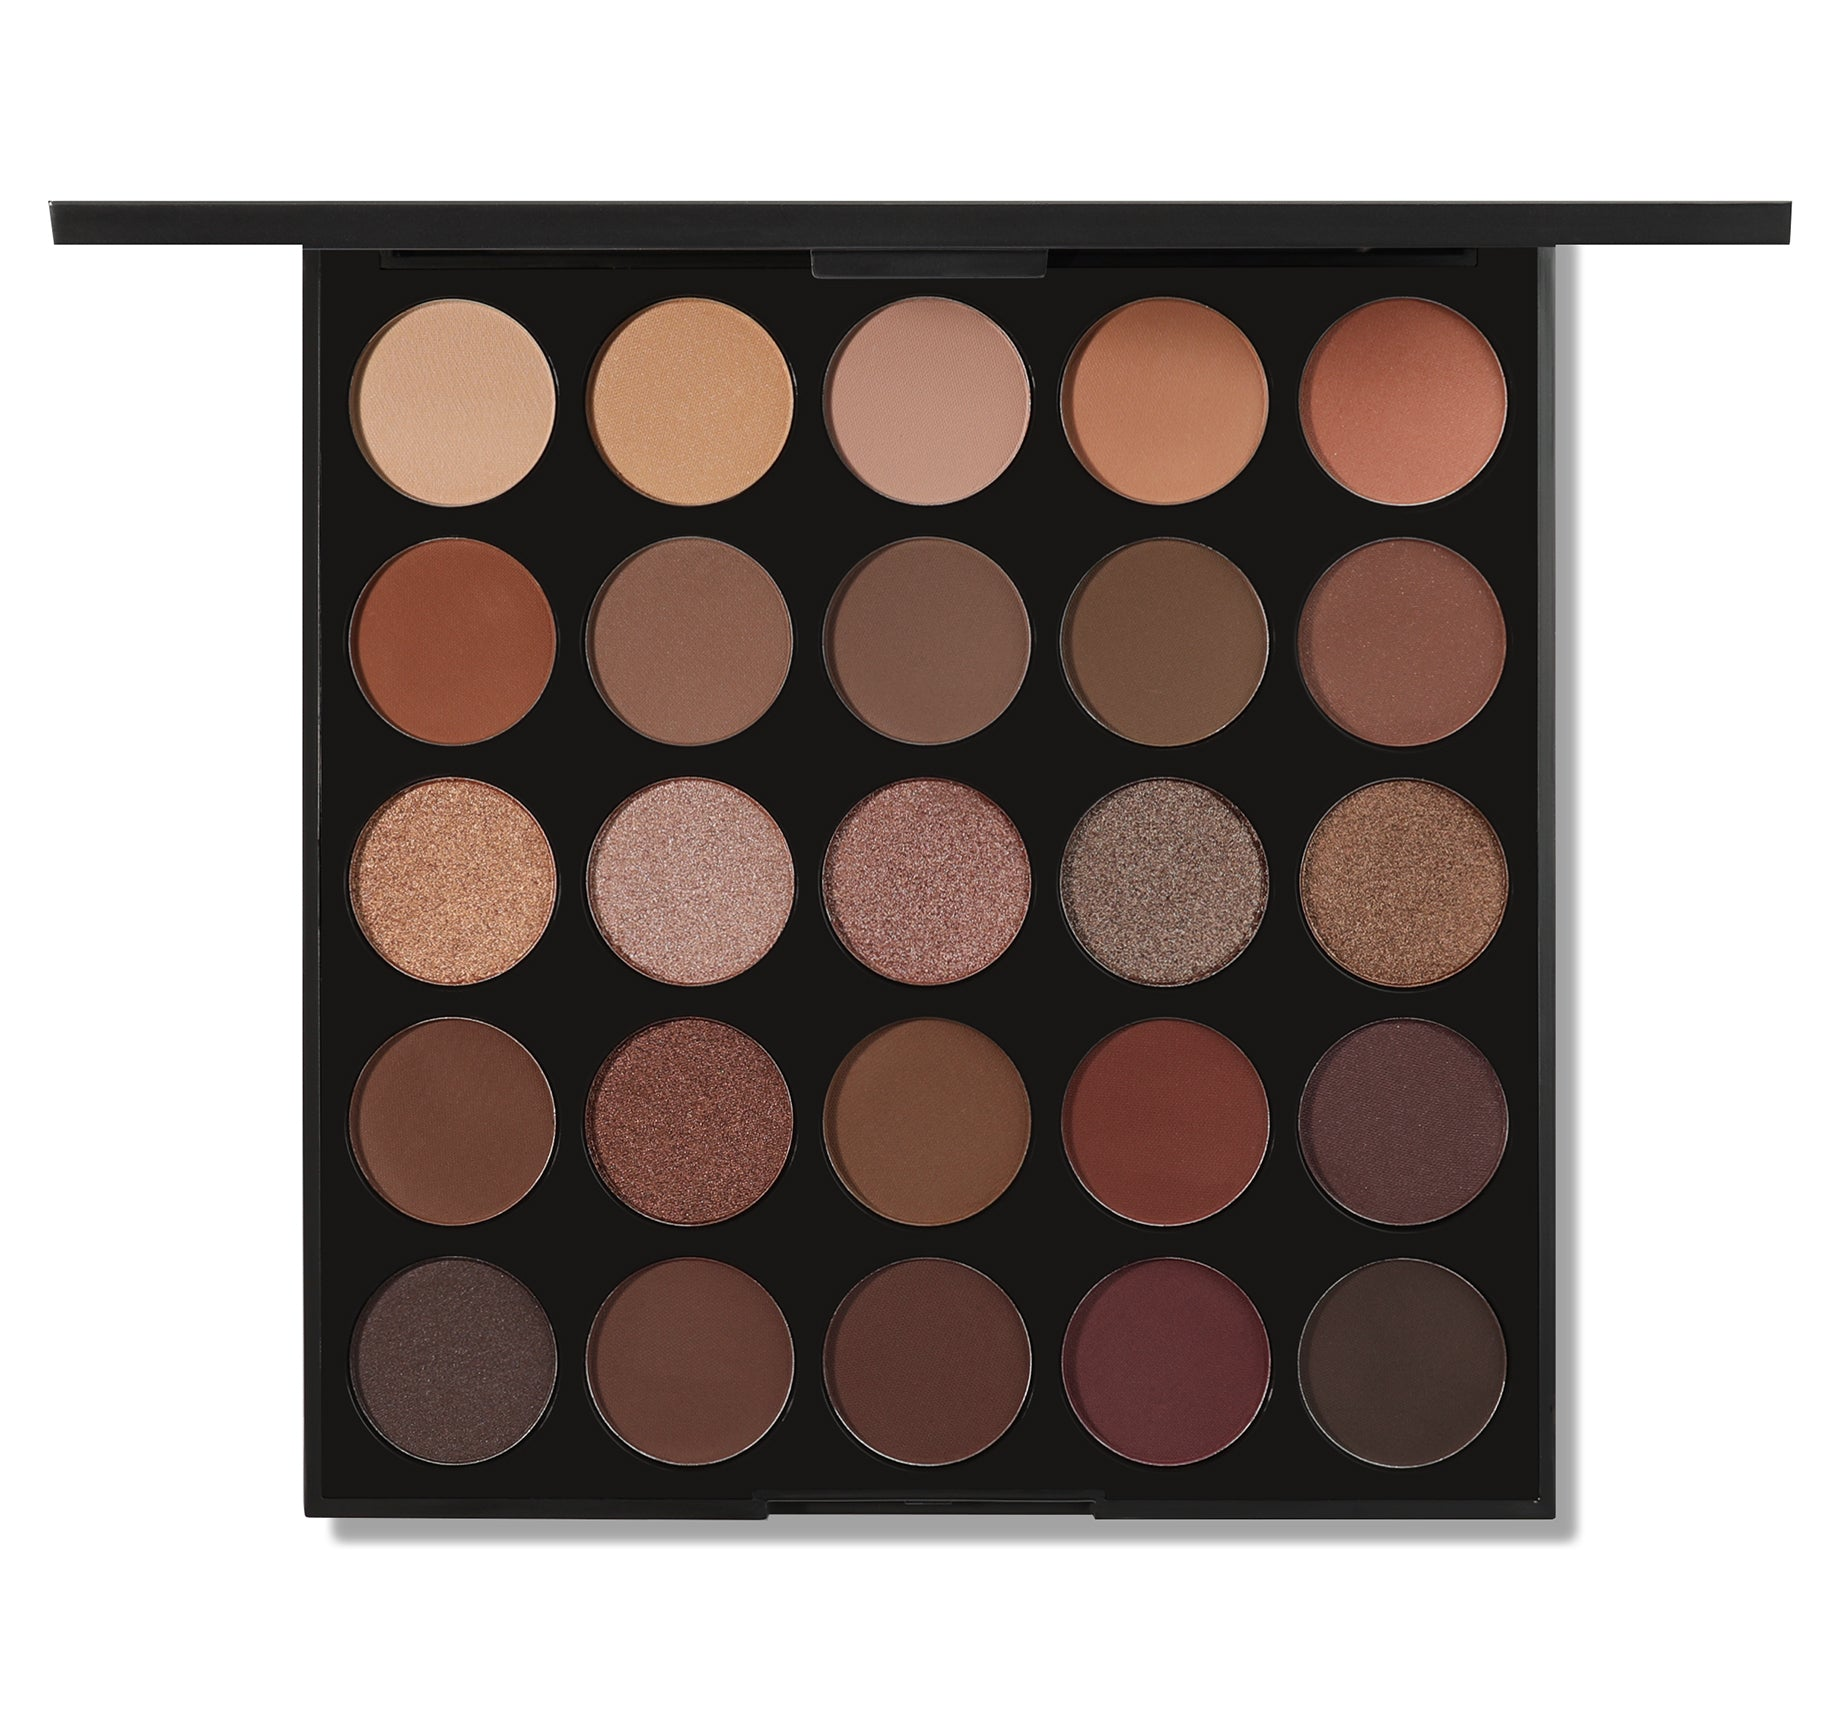 25B BRONZED MOCHA ARTISTRY PALETTE, view larger image